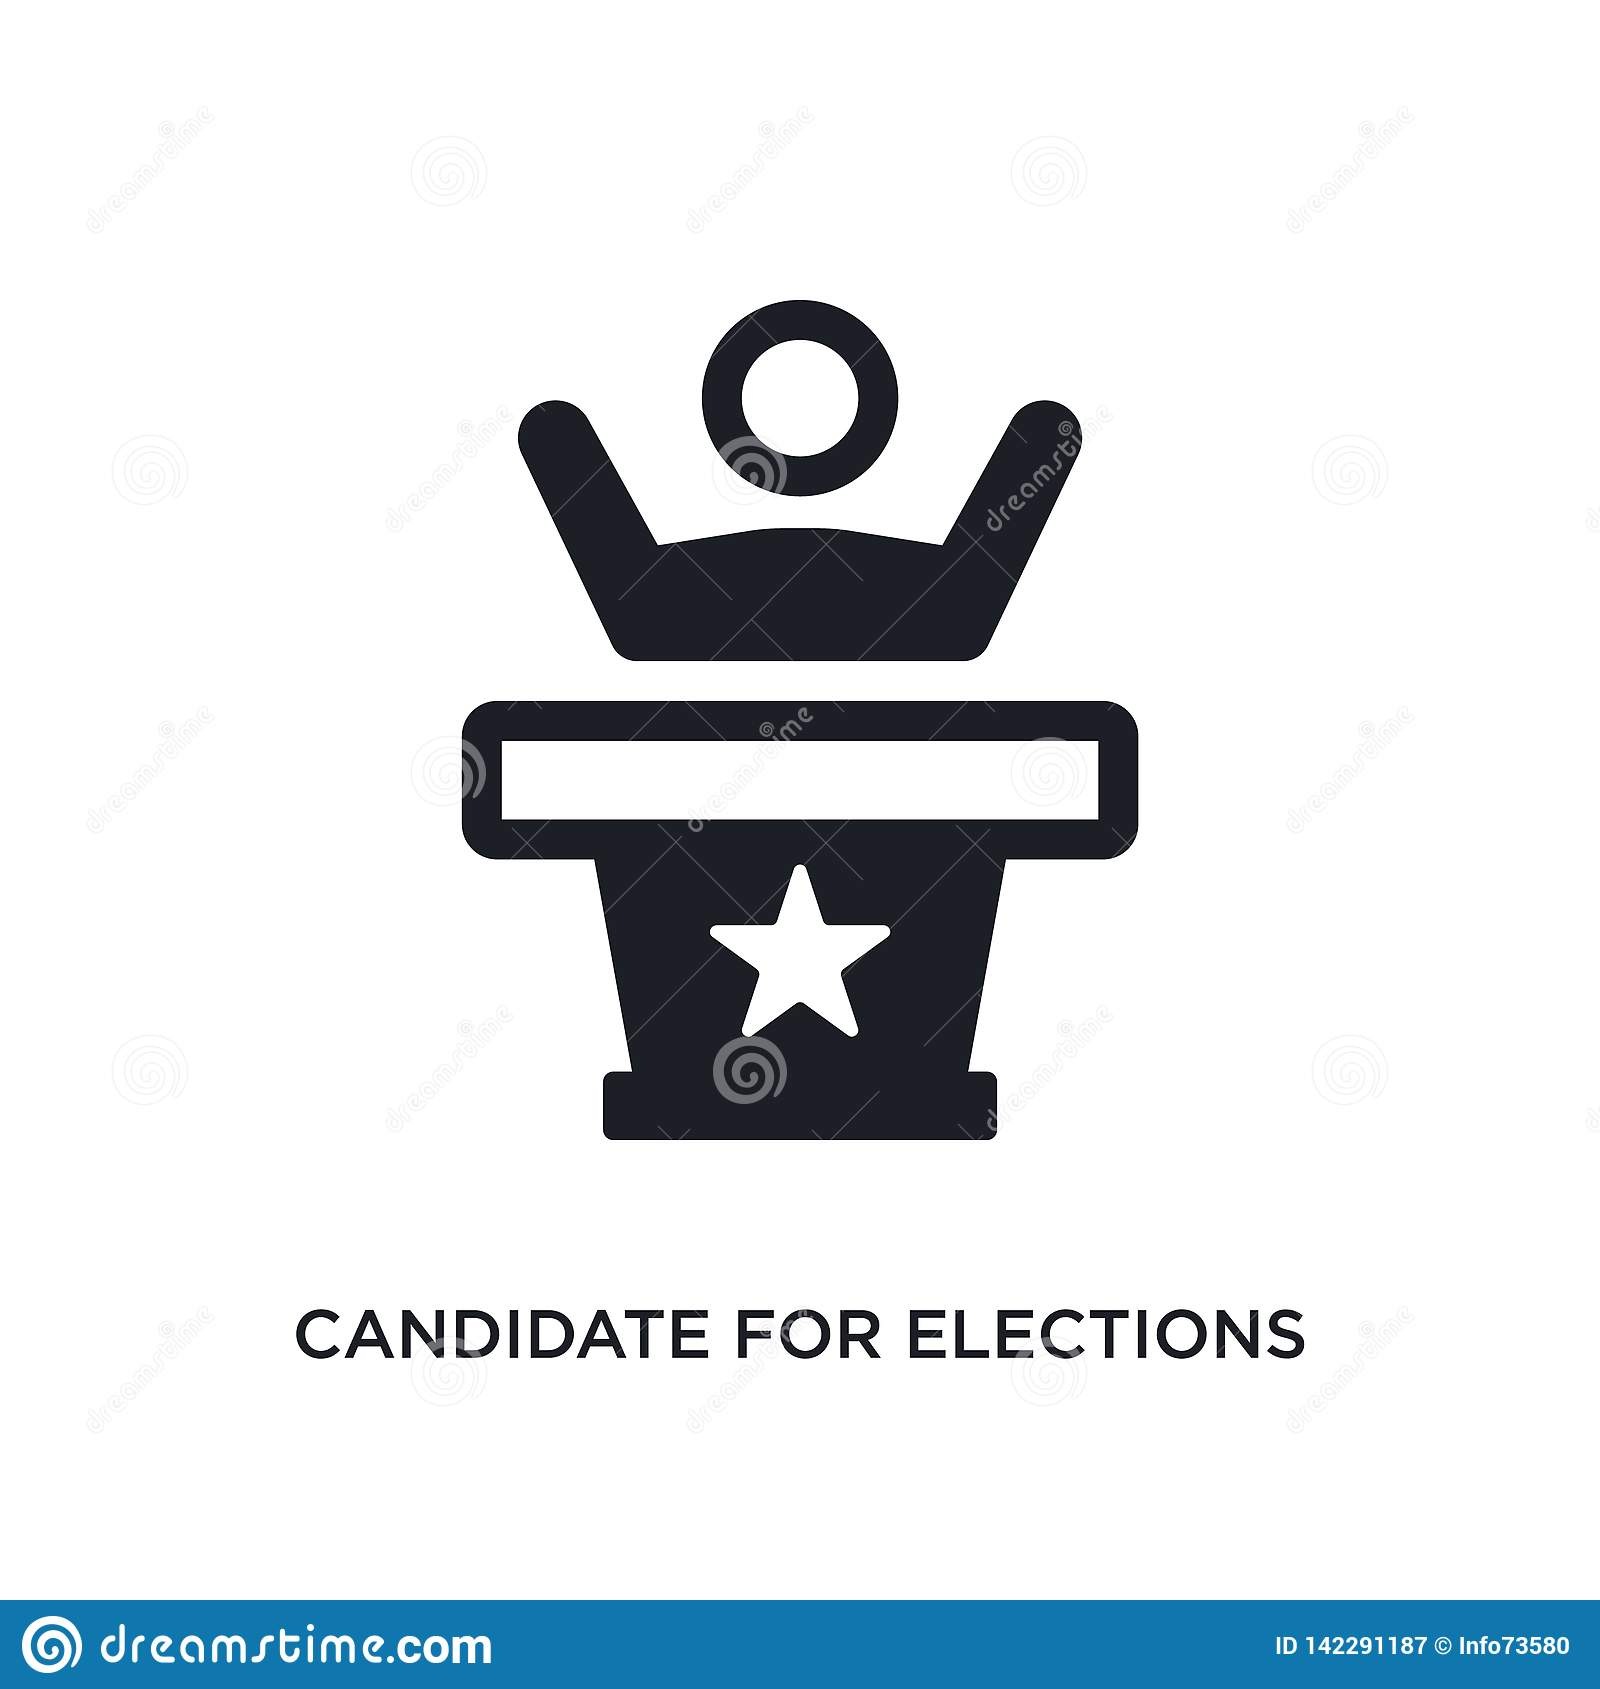 candidate for elections isolated icon. simple element illustration from political concept icons. candidate for elections editable